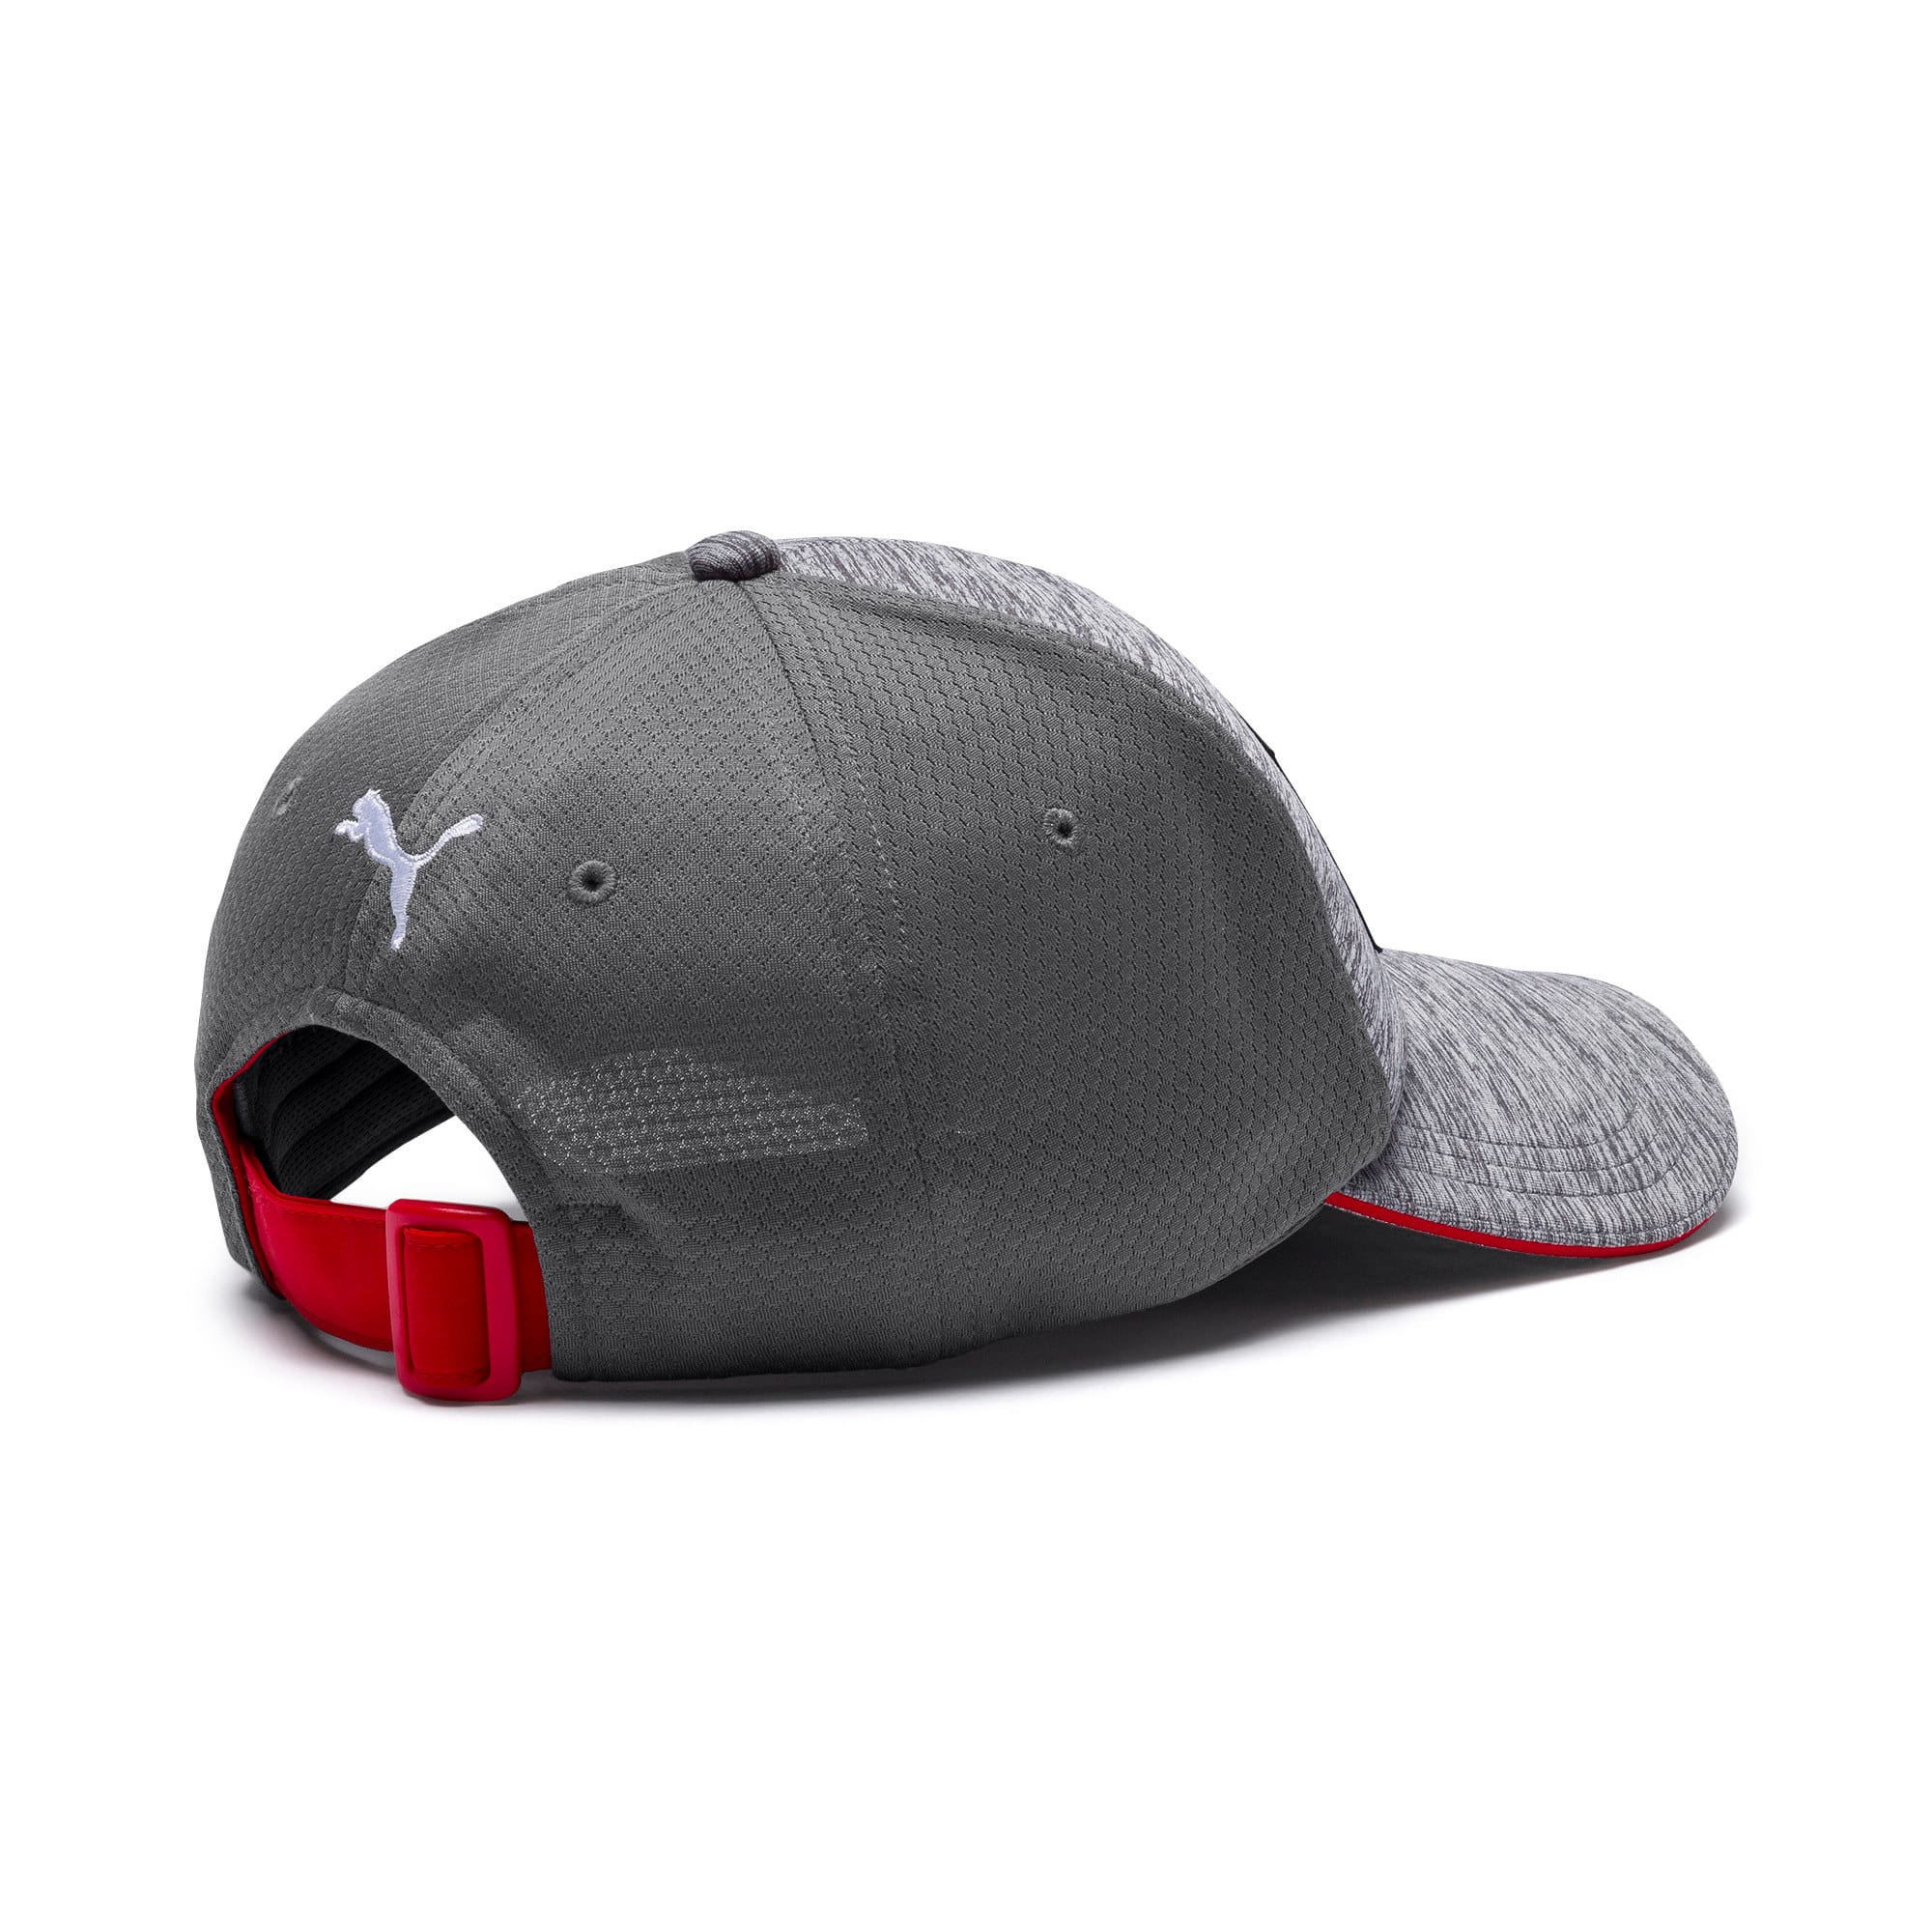 Red Bull Racing Lifestyle Baseball Cap, Smoked Pearl, large